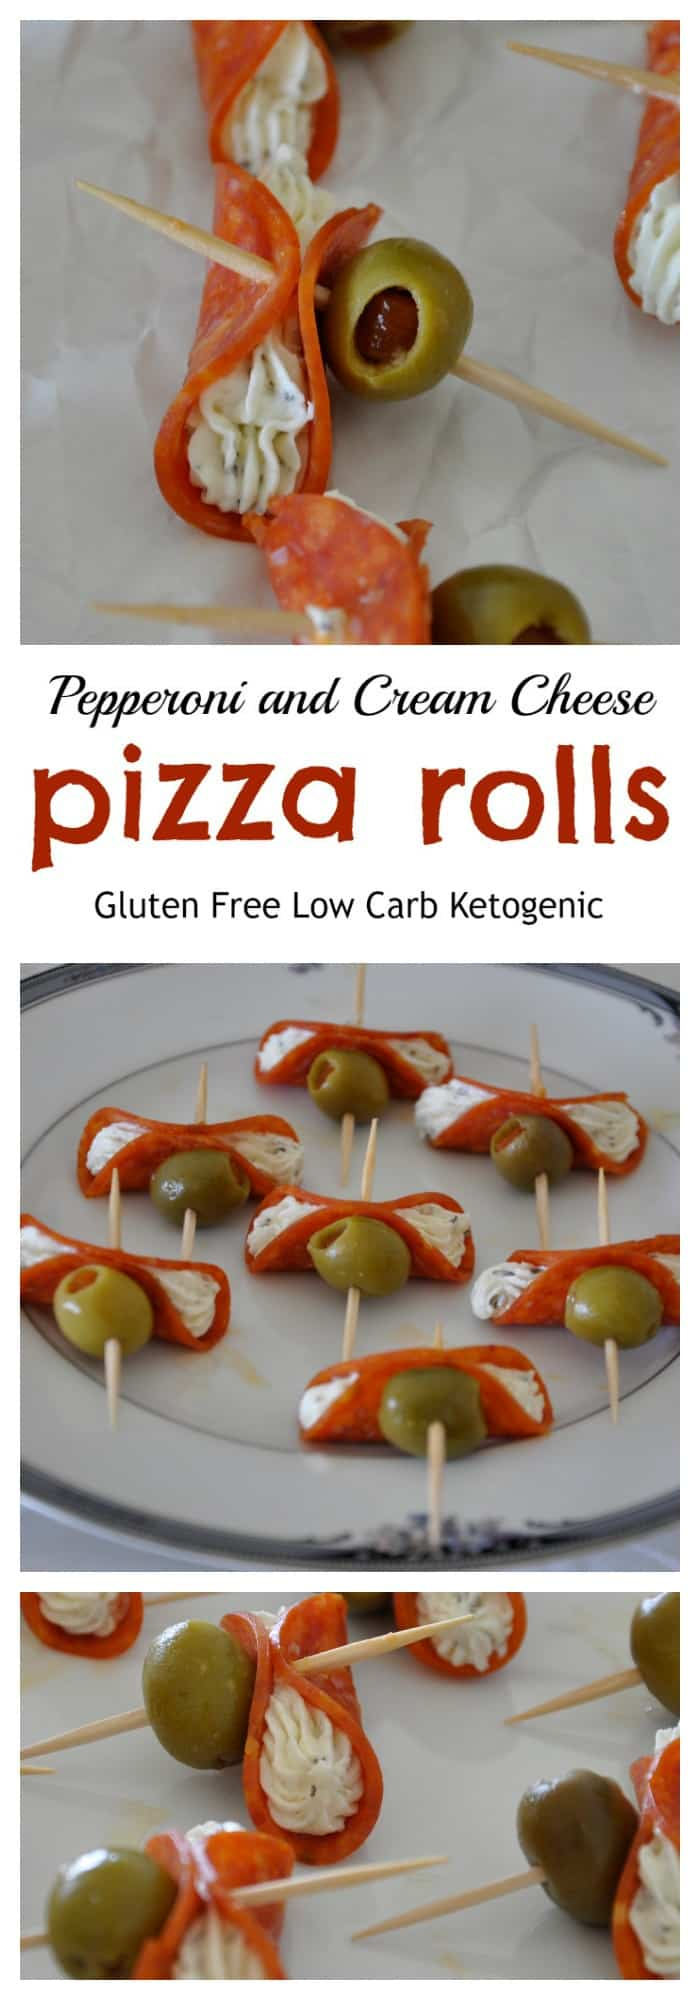 Three views of pepperoni and cream cheese pizza rolls.